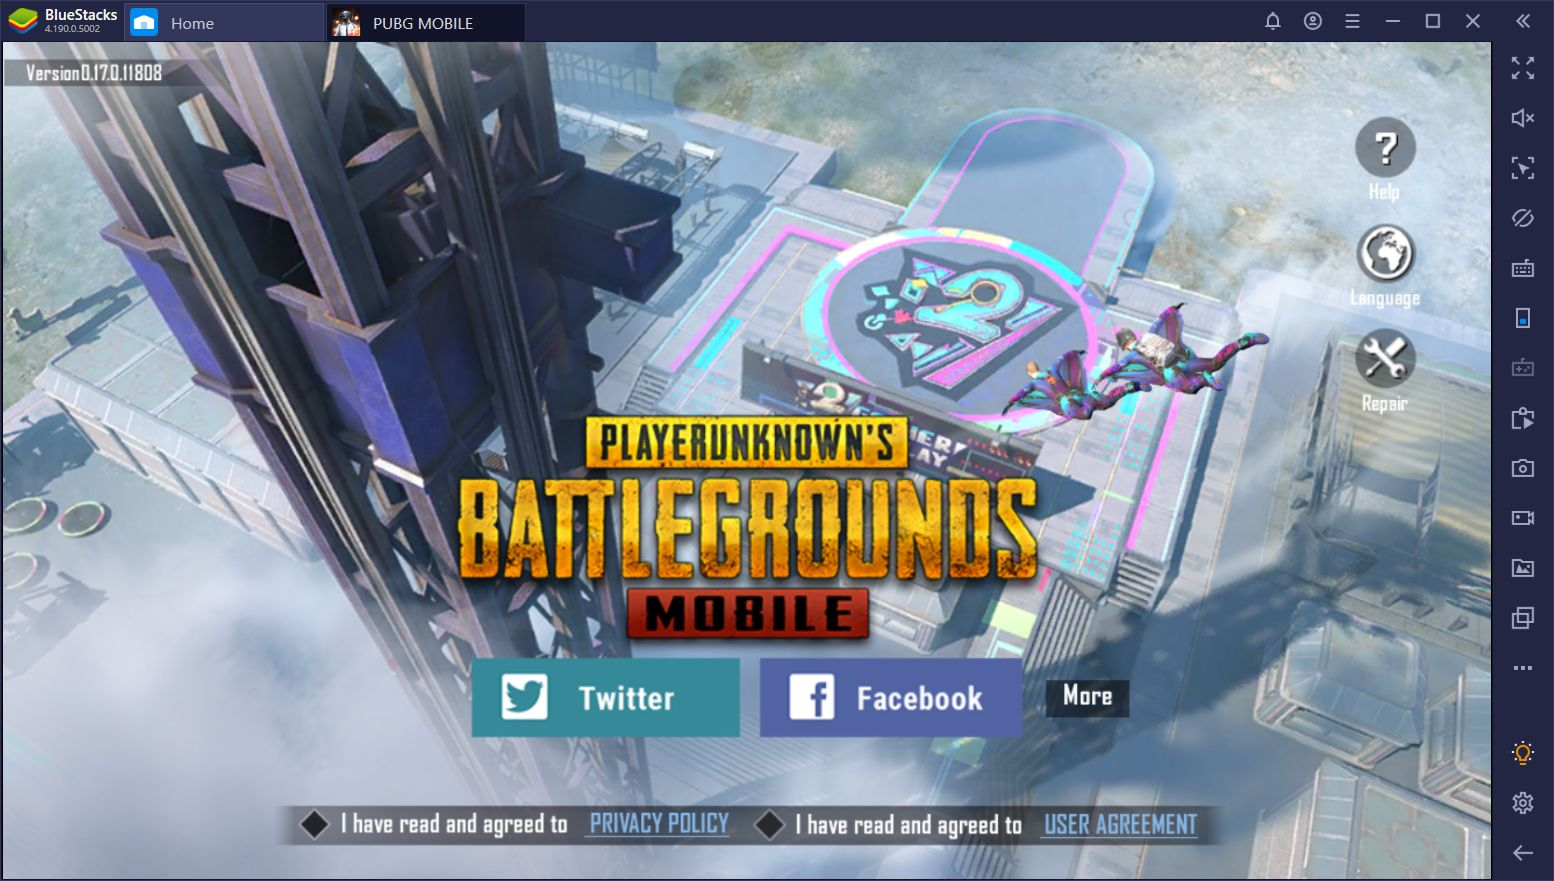 PUBG Mobile's New Cold Front Survival Mode Coming Out This April 16th